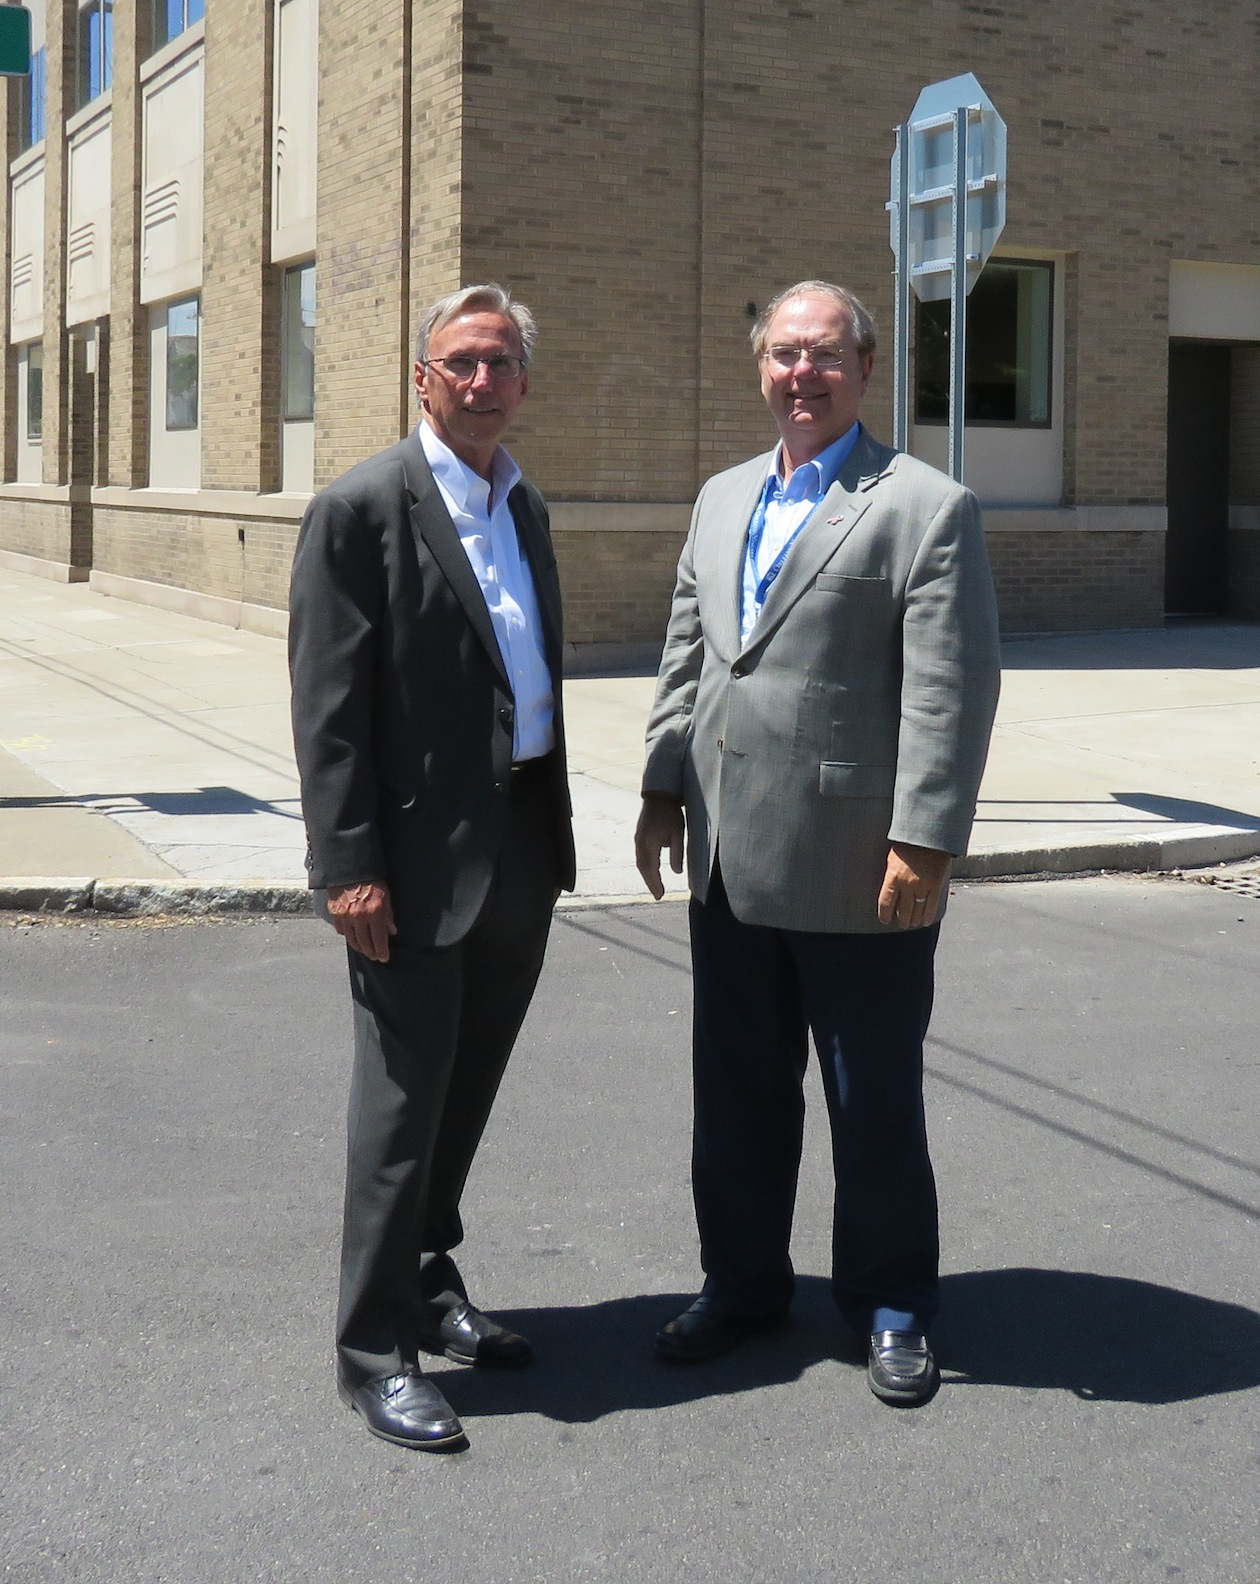 From left, Joe Steinmetz and Dr. Clark Godshall stand outside of the new center on the corner of 6th Street and Walnut Avenue. (Photos by David Yarger)